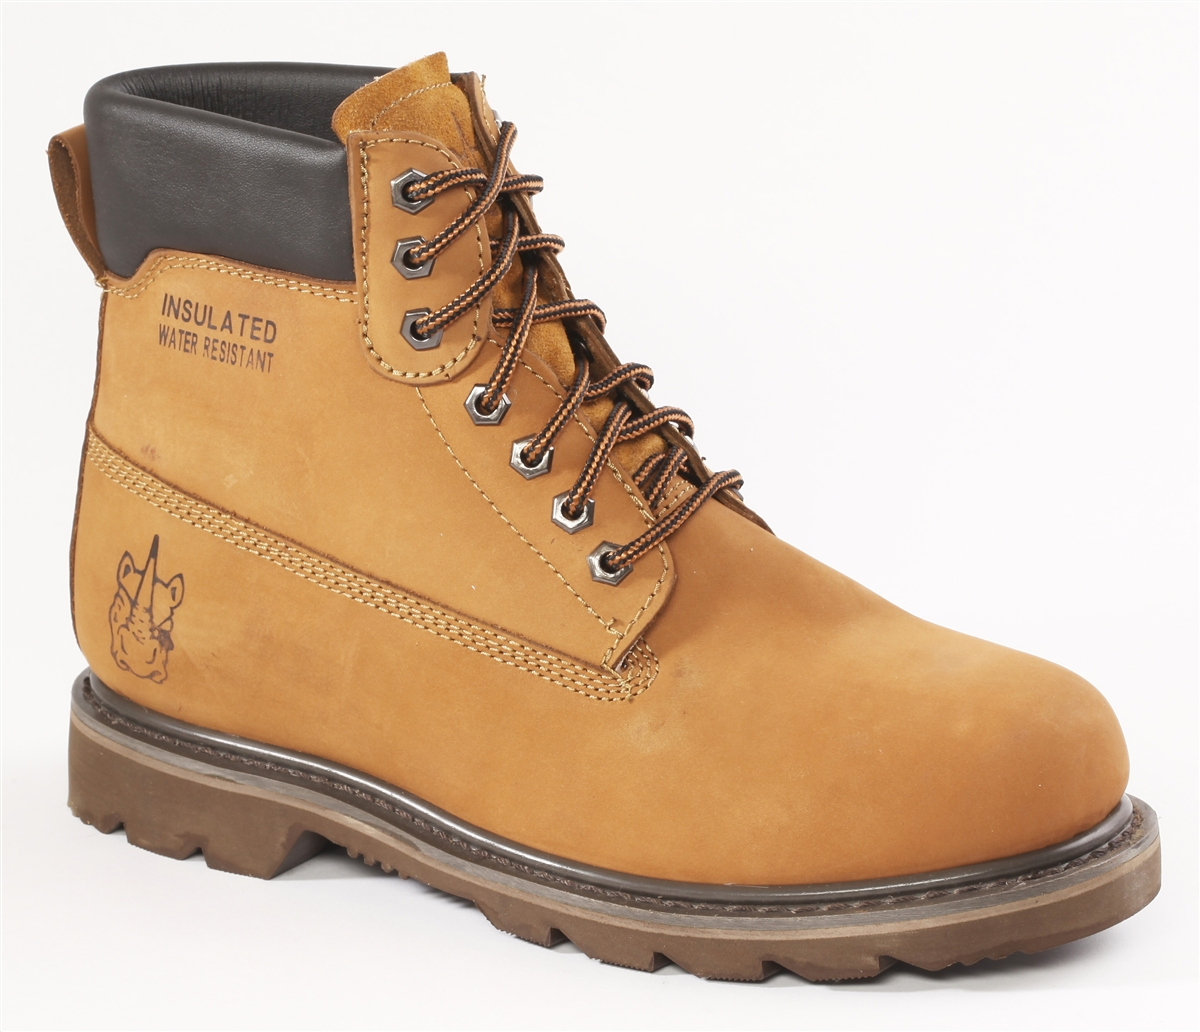 Rhino Work Boots & Safety Shoes